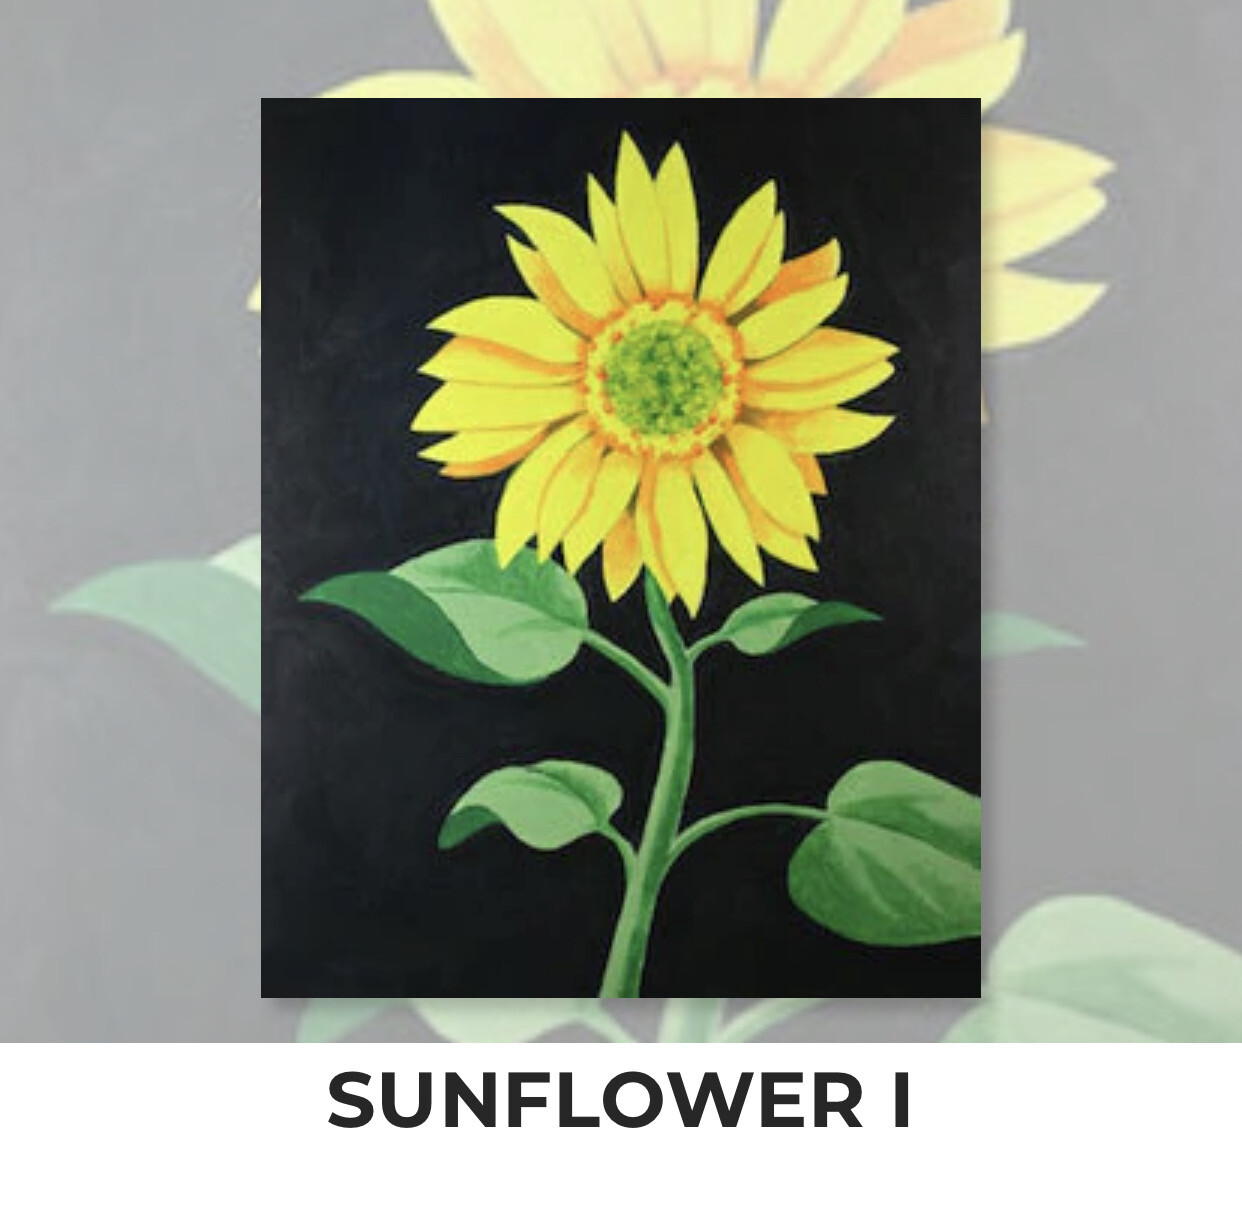 Sunflower I ADULT Acrylic Paint On Canvas DIY Art Kit - 3 Week Special Order